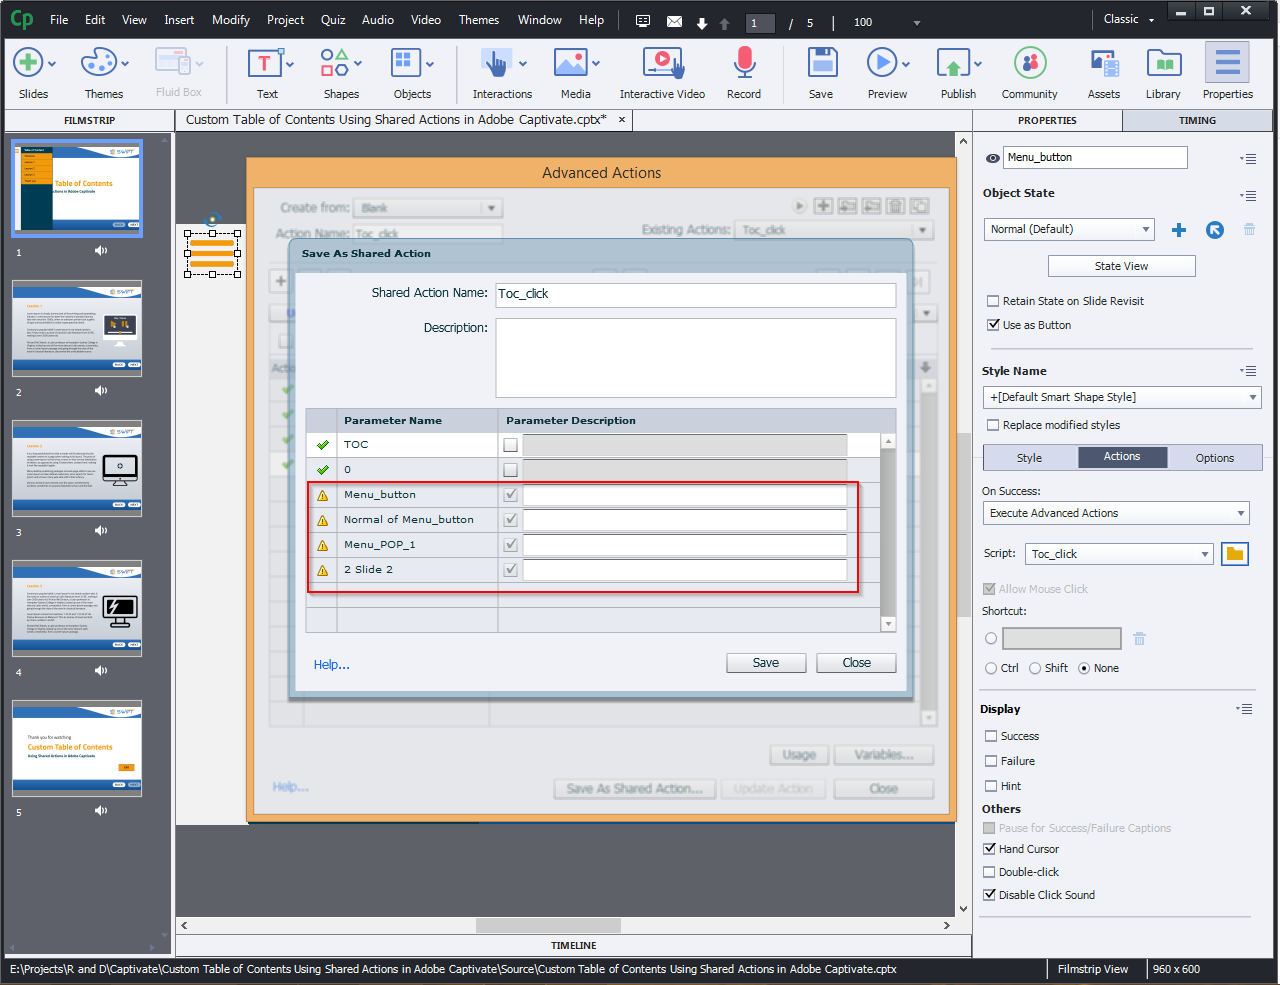 Contents Using Shared Actions in Adobe Captivate 2019 7